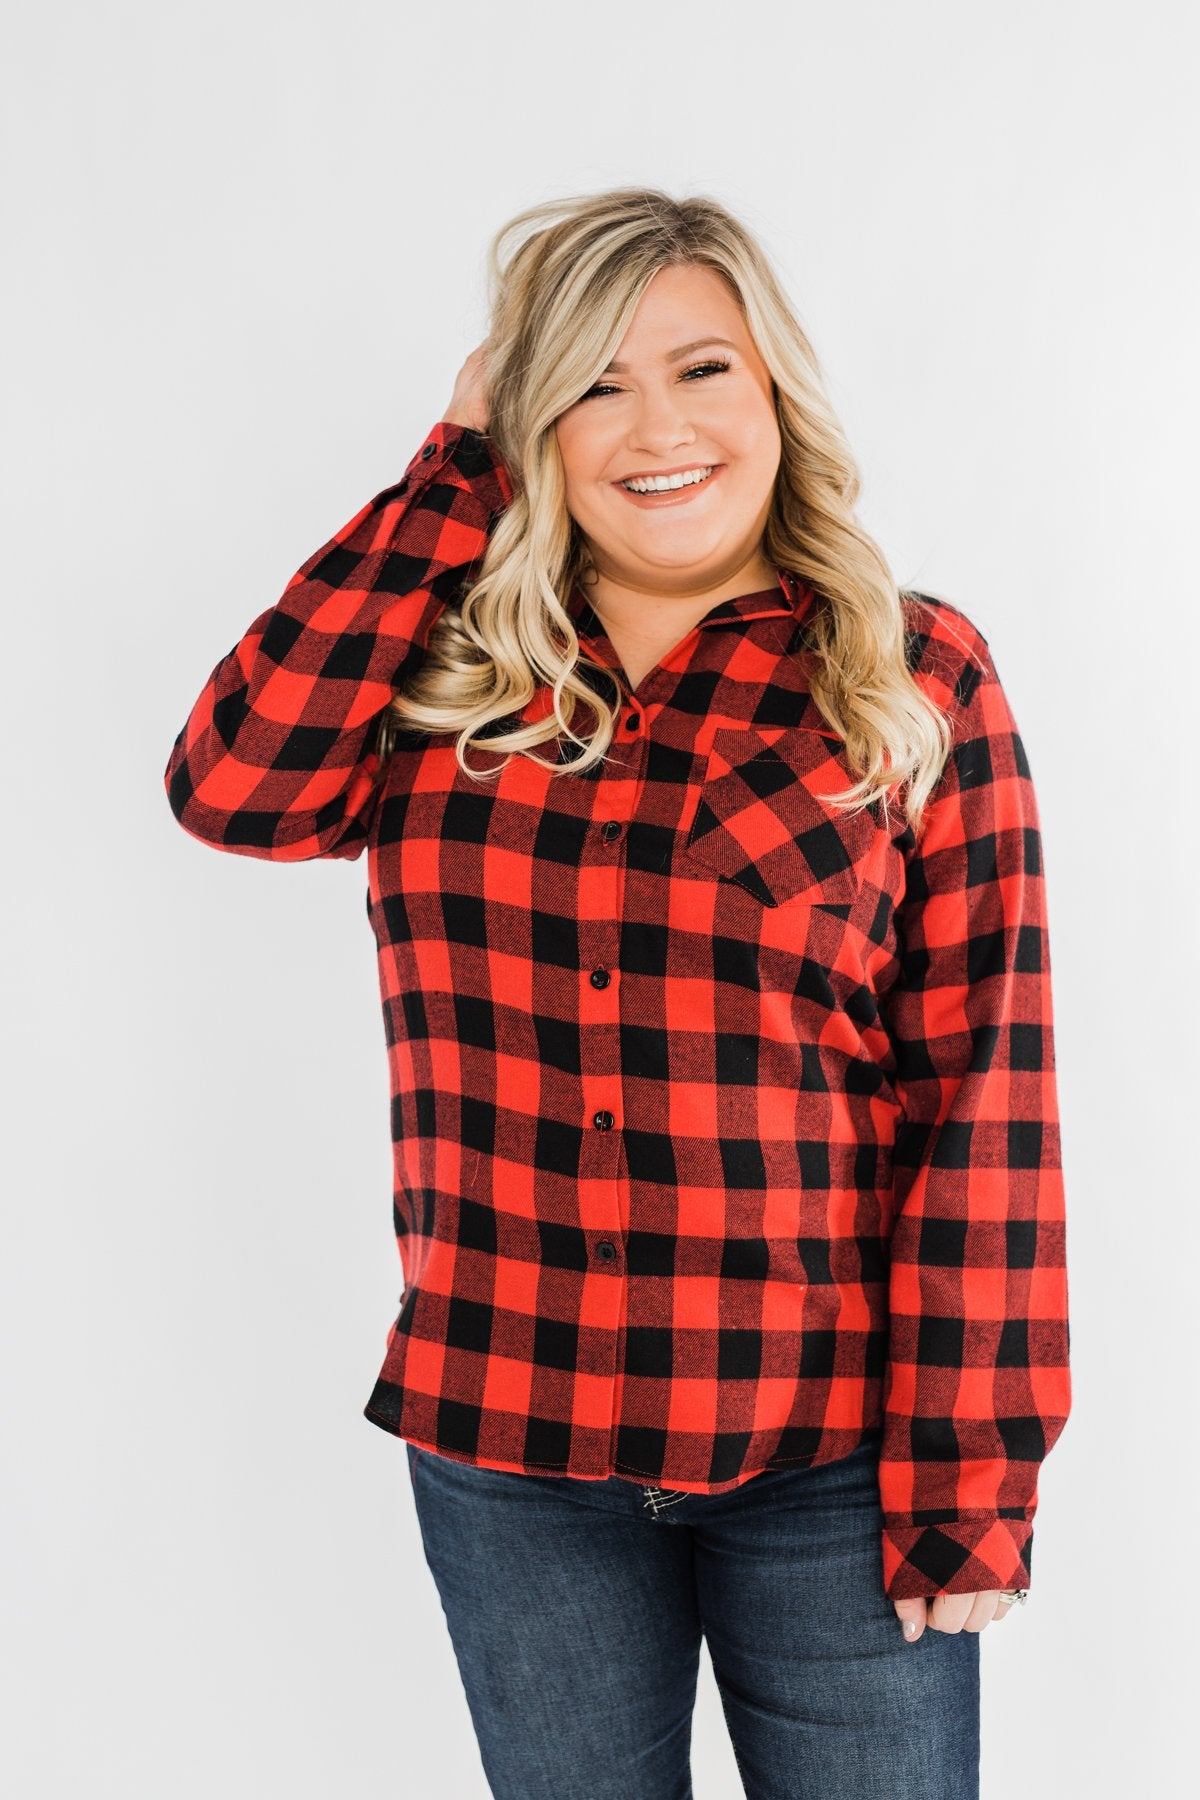 On An Adventure Plaid Top- Buffalo Plaid